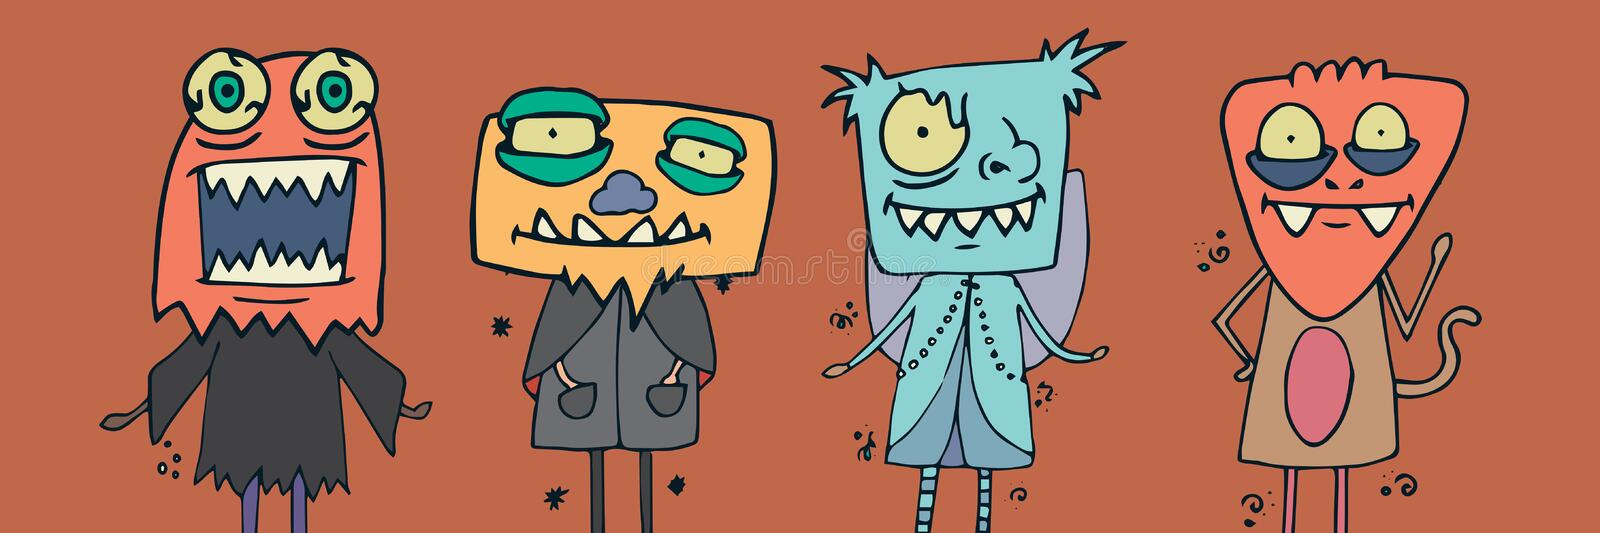 Illustrations de monstre dans des costumes de Halloween illustration stock